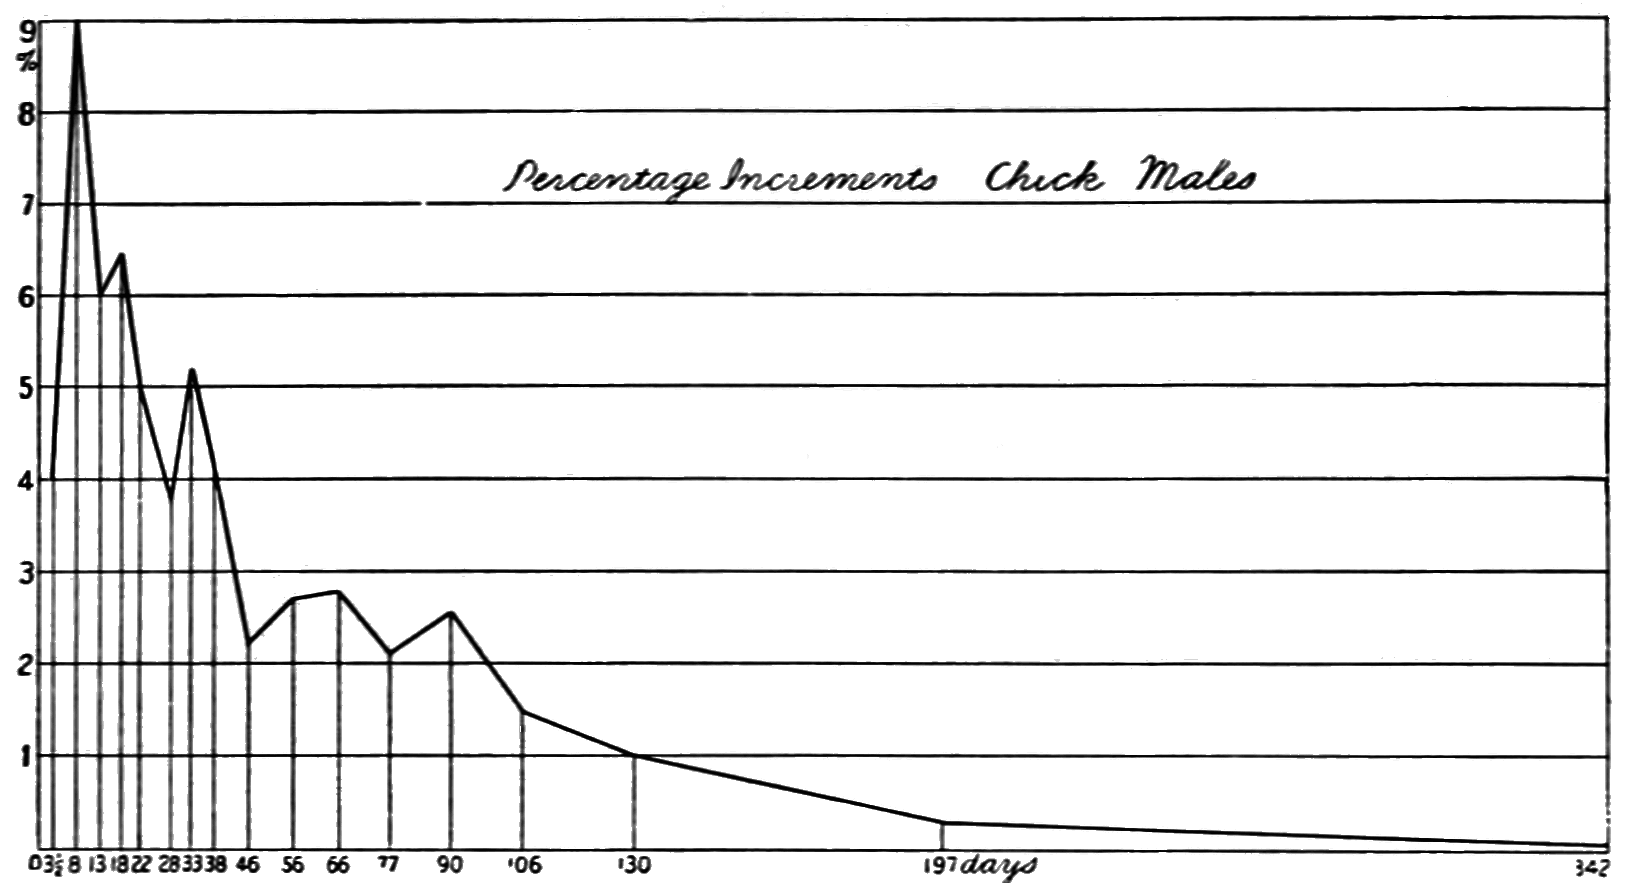 PSM V71 D207 Graph of the daily pc of weight increments by male chickens.png